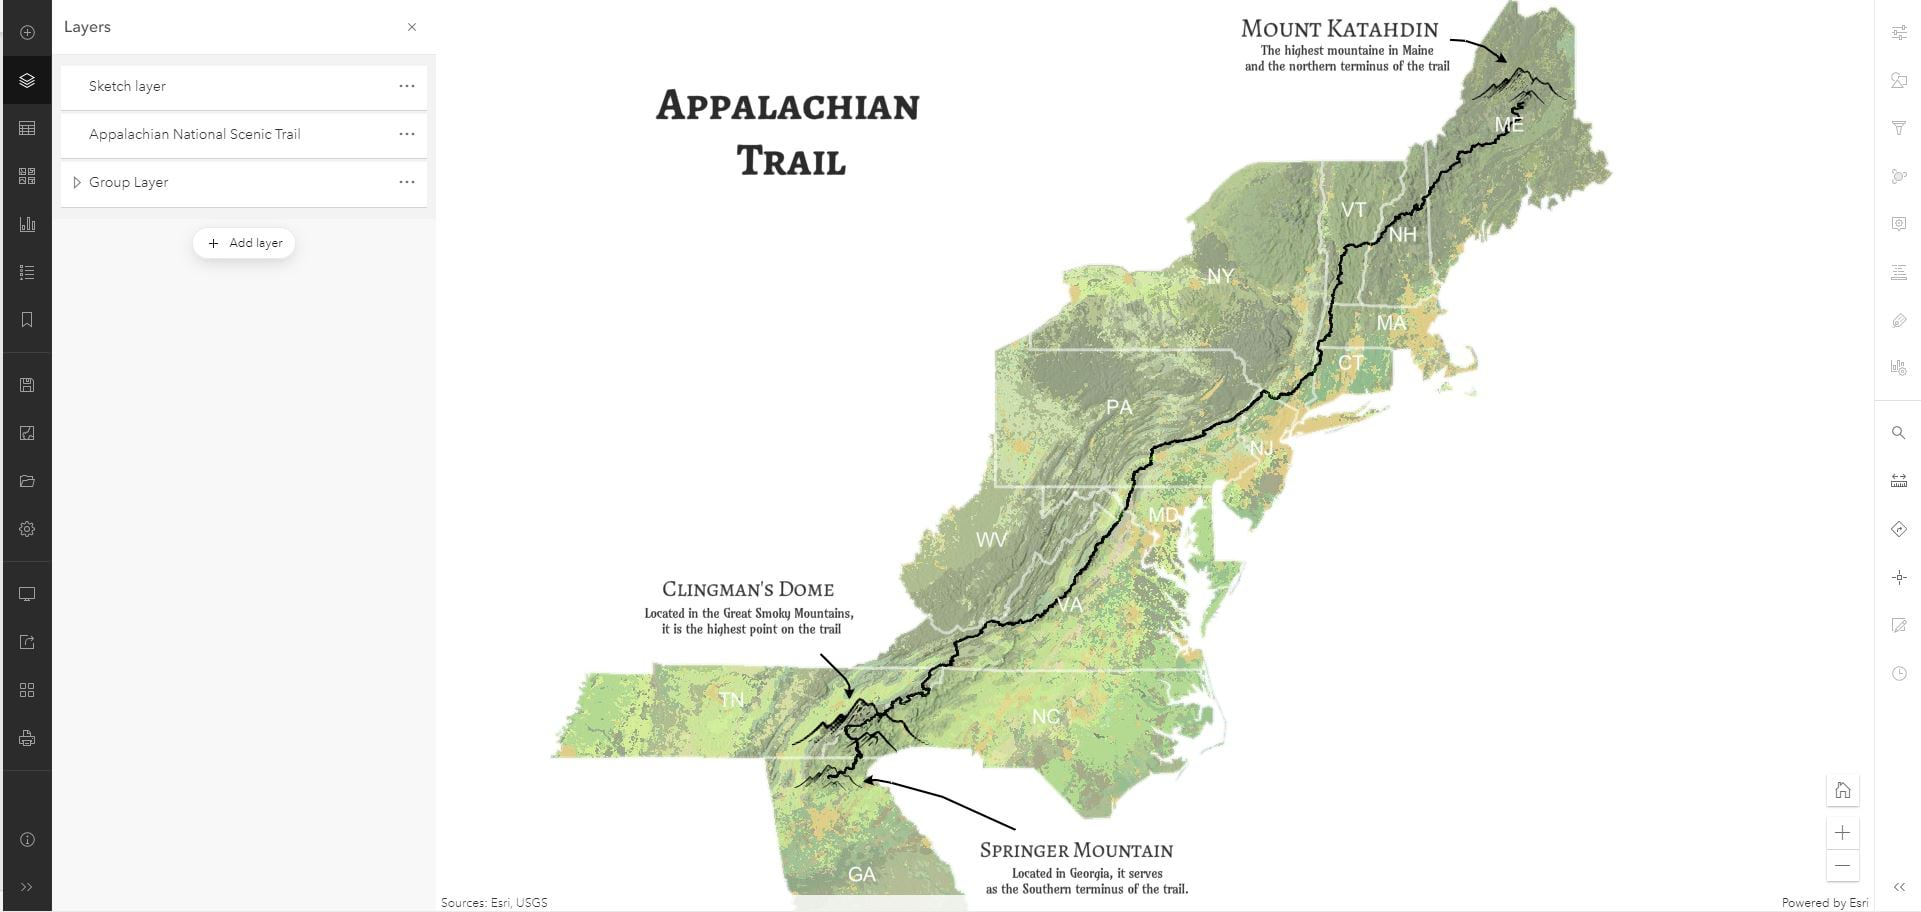 A map depicting the Appalachian Trail using sketch